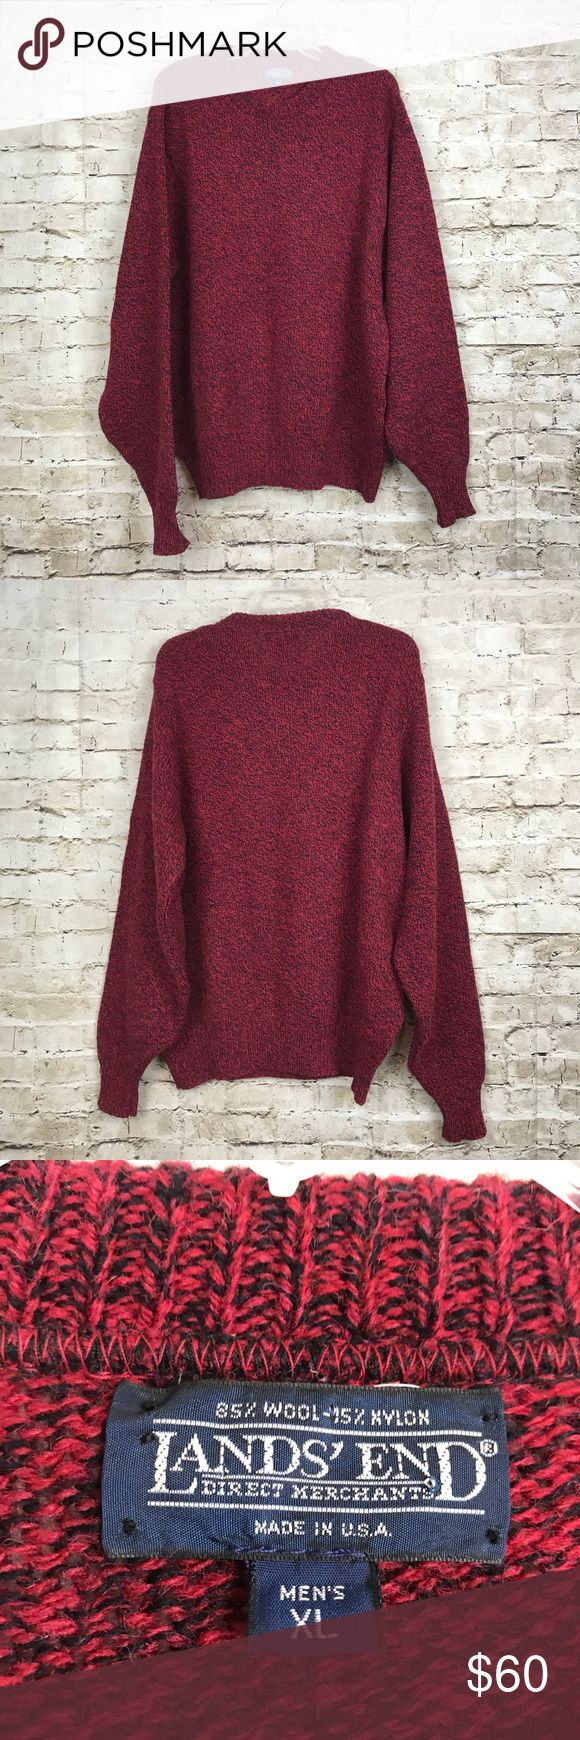 """LANDS END Mens Sweater XL Wool Nylon Made in USA LANDS END Mens Sweater Size XL Red Black Pullover Ski Wool Nylon Made in USA  Excellent condition. 30"""" shoulder to hem and 27"""" armpit to armpit but will stretch further. Lands' End Sweaters Crewneck"""